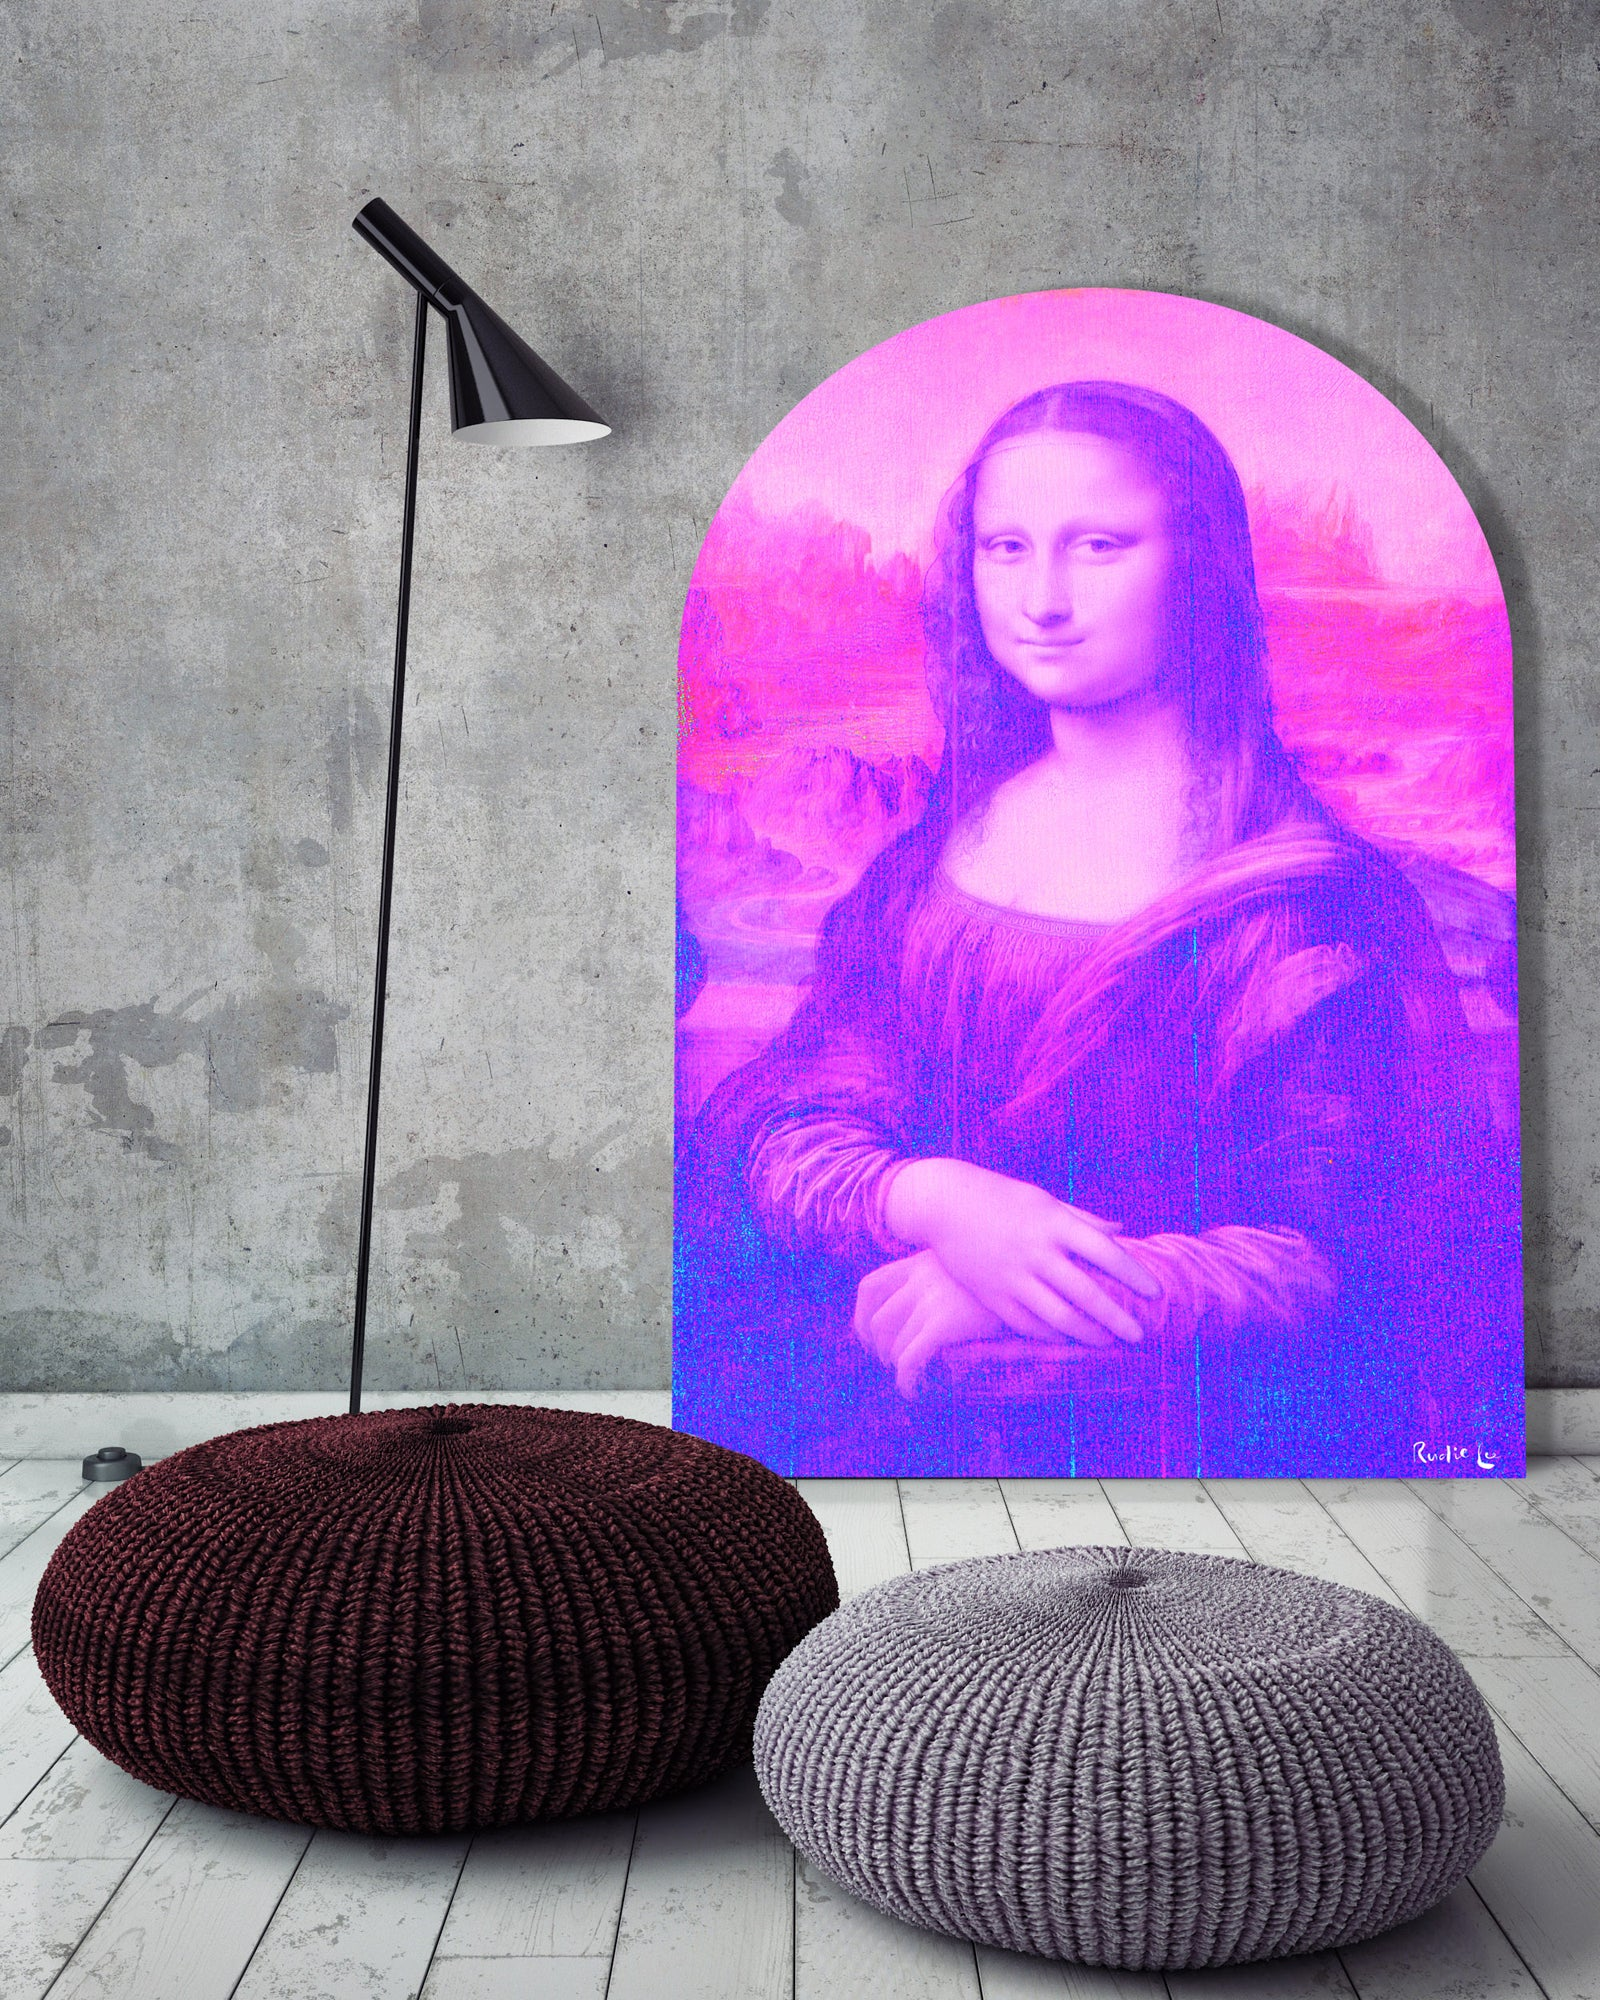 Mona Lisa Remixed (Magenta) (Arched) by Rudie Lee